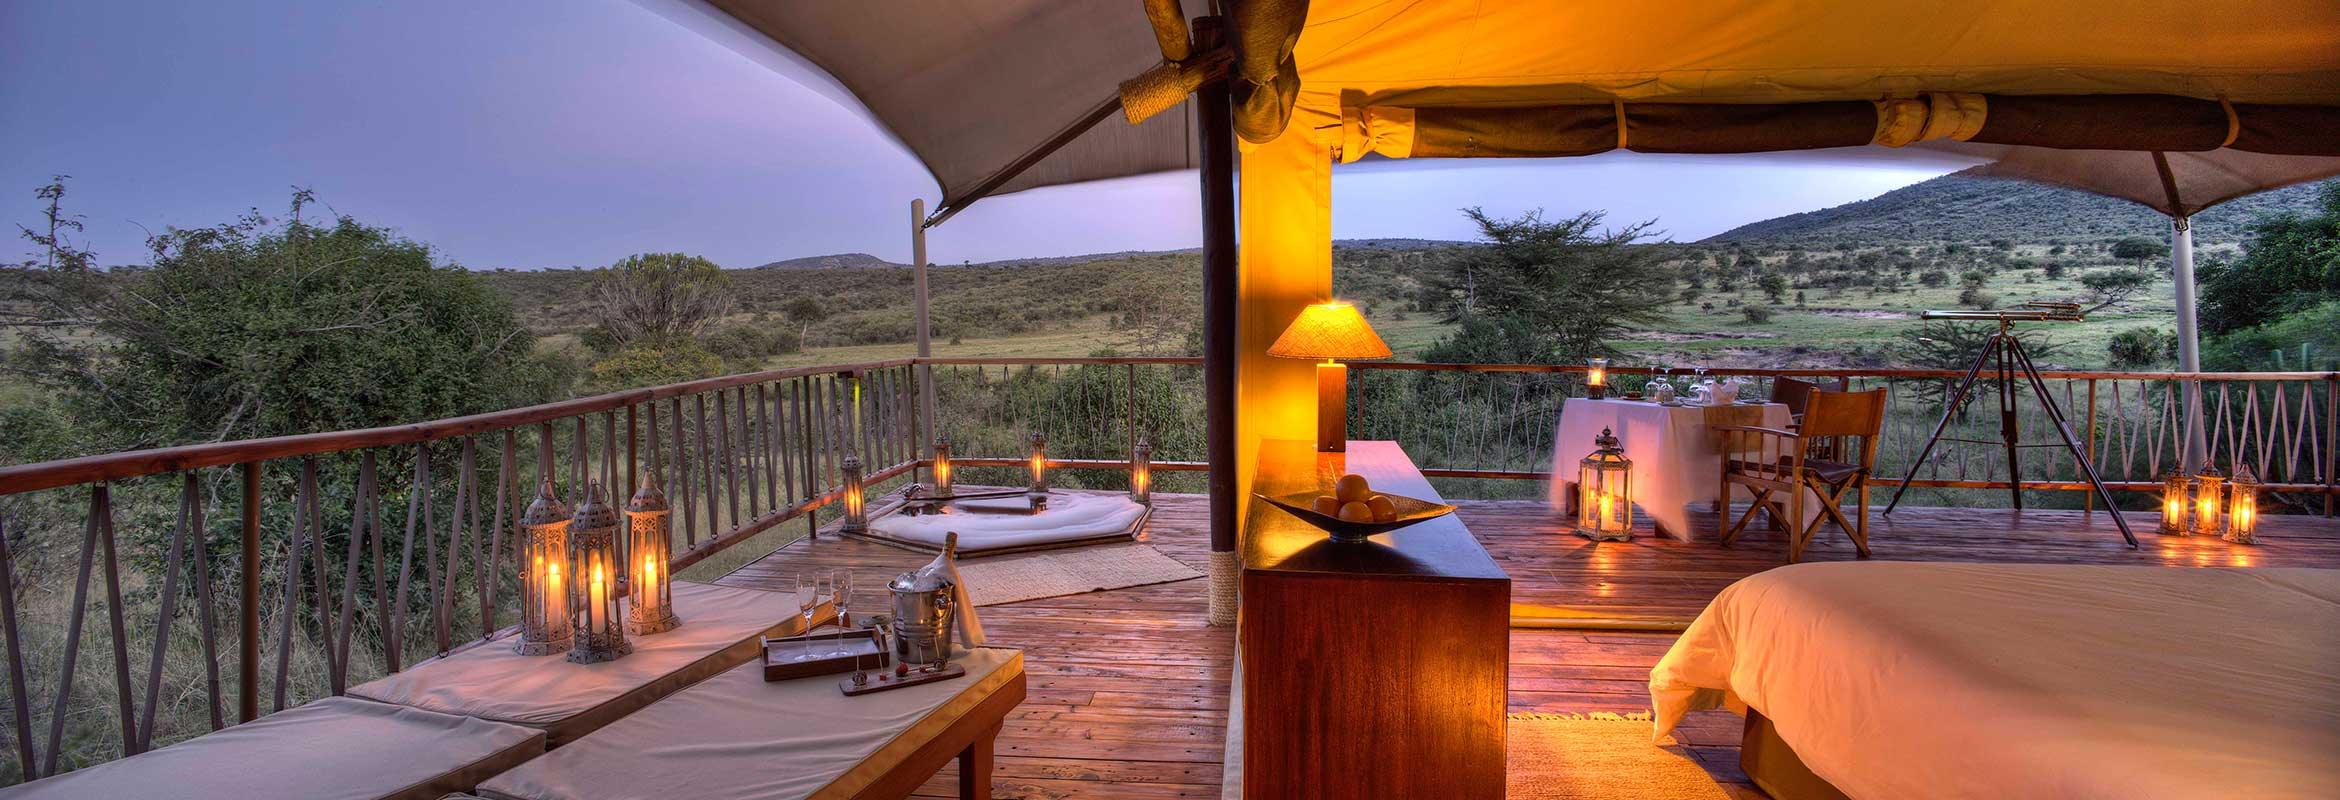 Tented camp safaris